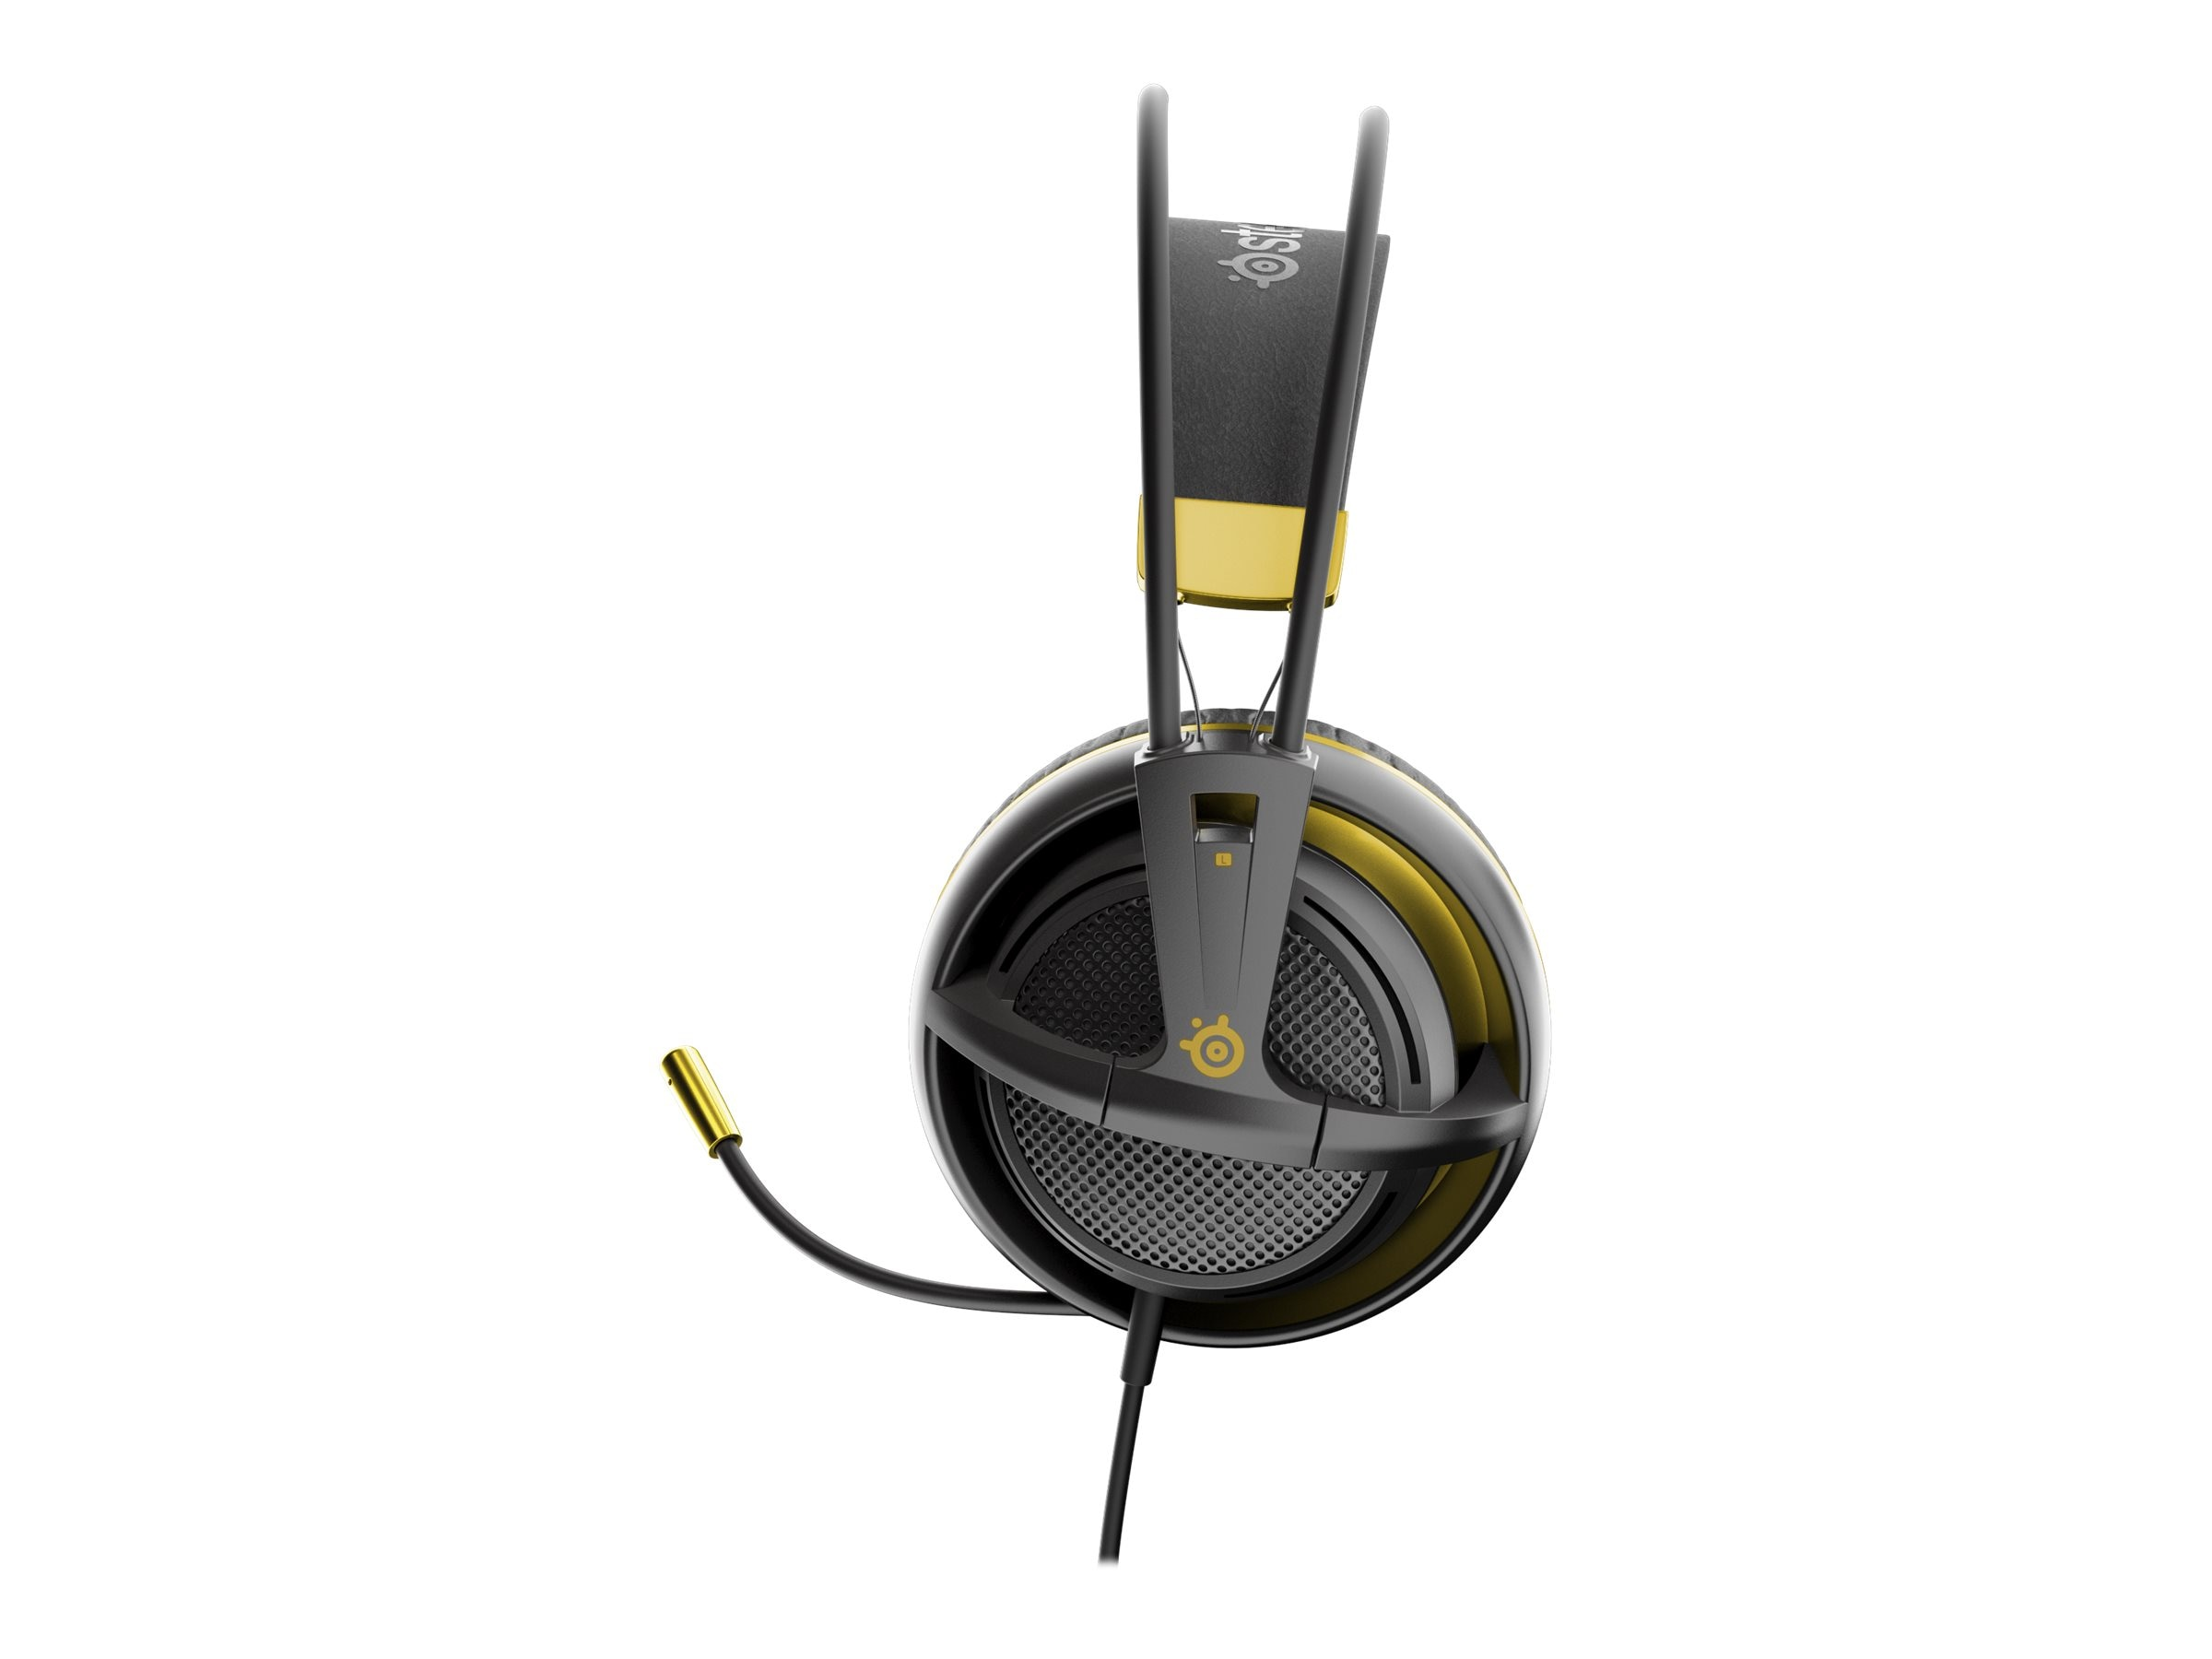 Steelseries 51134 Image 5